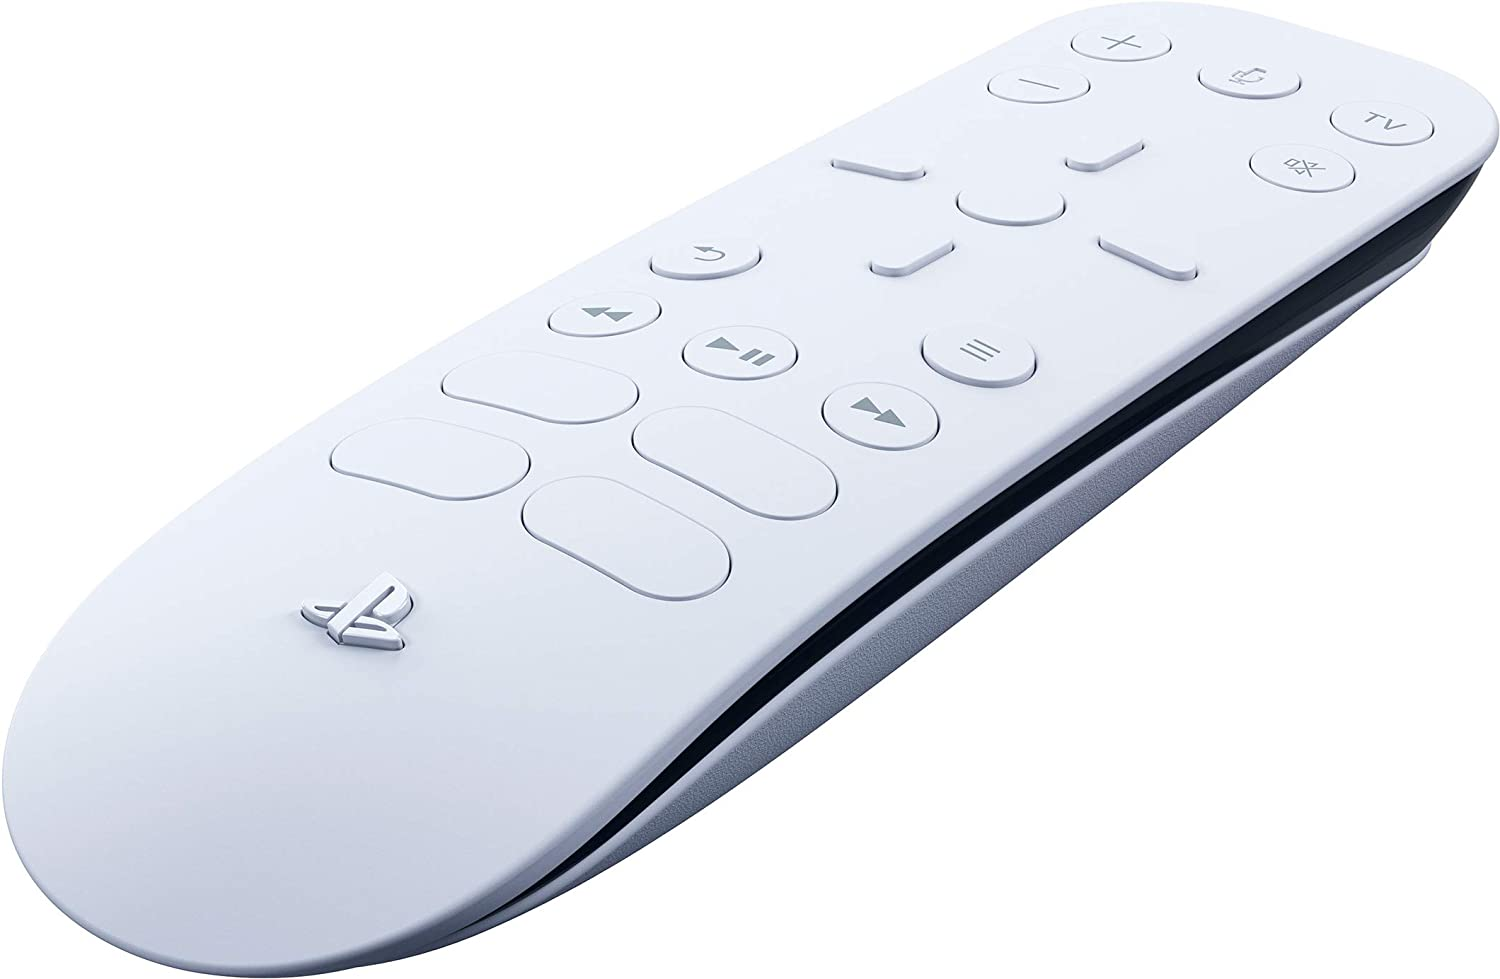 PlayStation 5 Media Remote